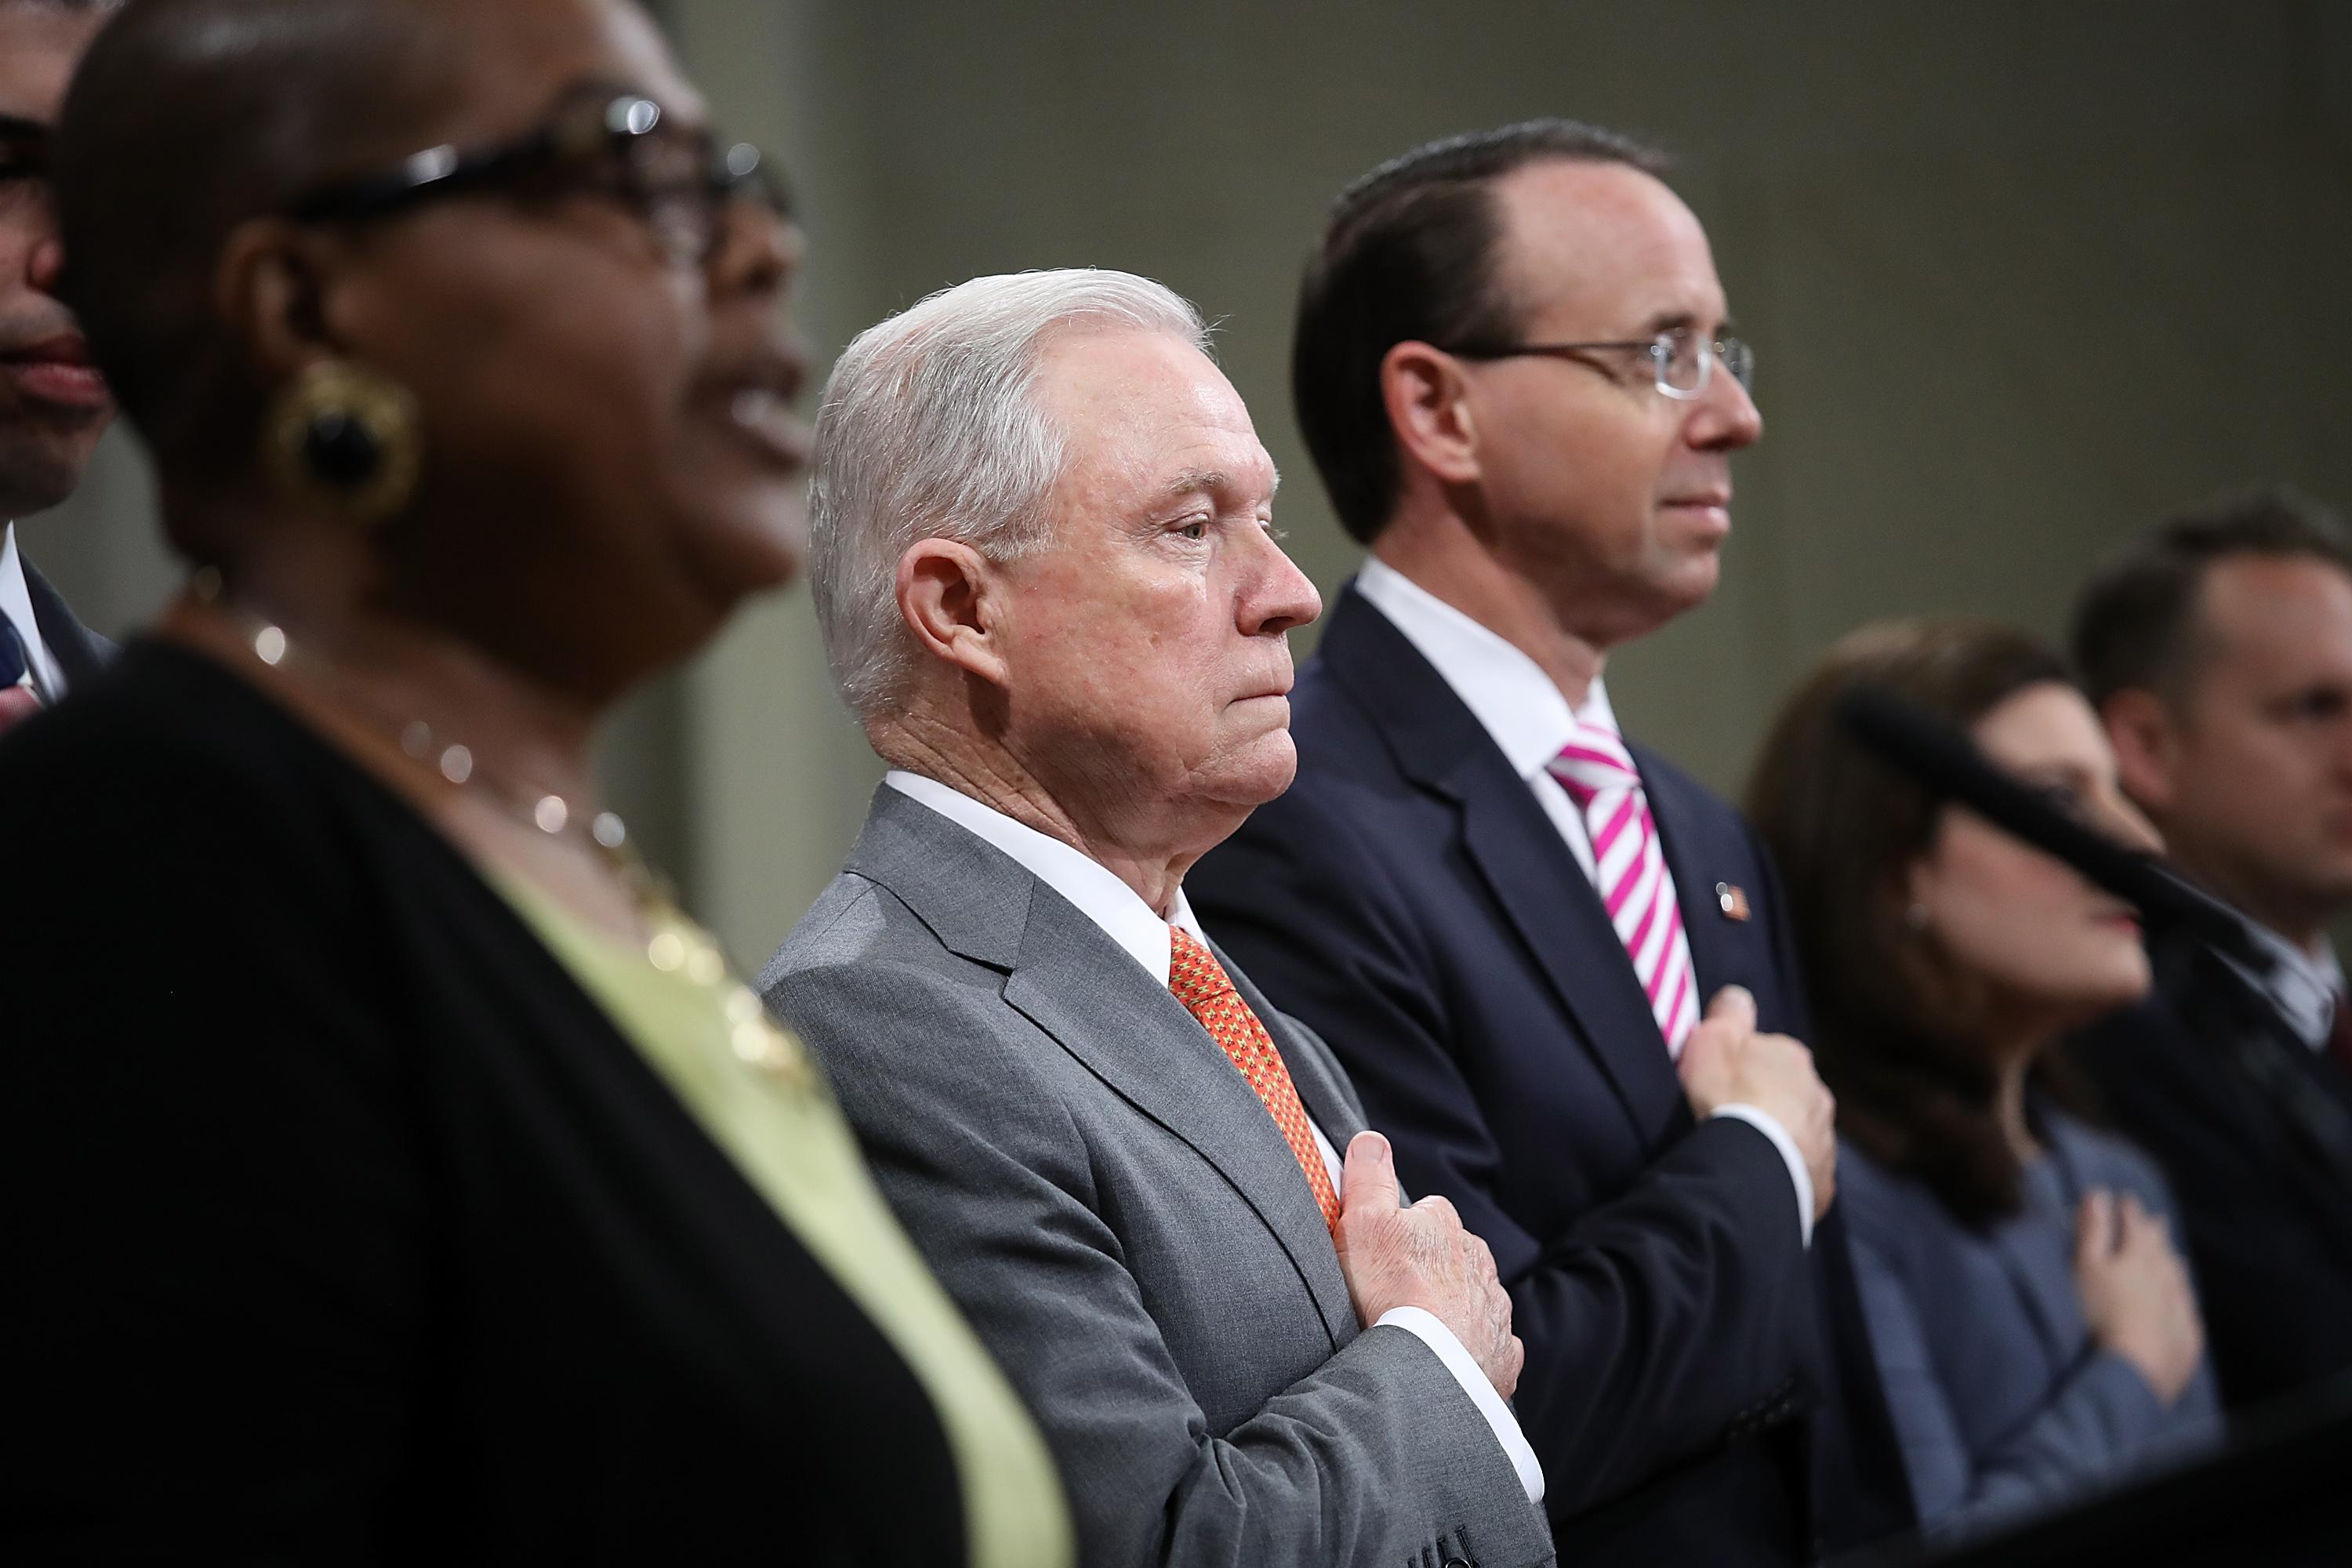 Jeff Sessions, standing to the left of Deputy Attorney General Rod Rosenstein, places his hand over his heart.